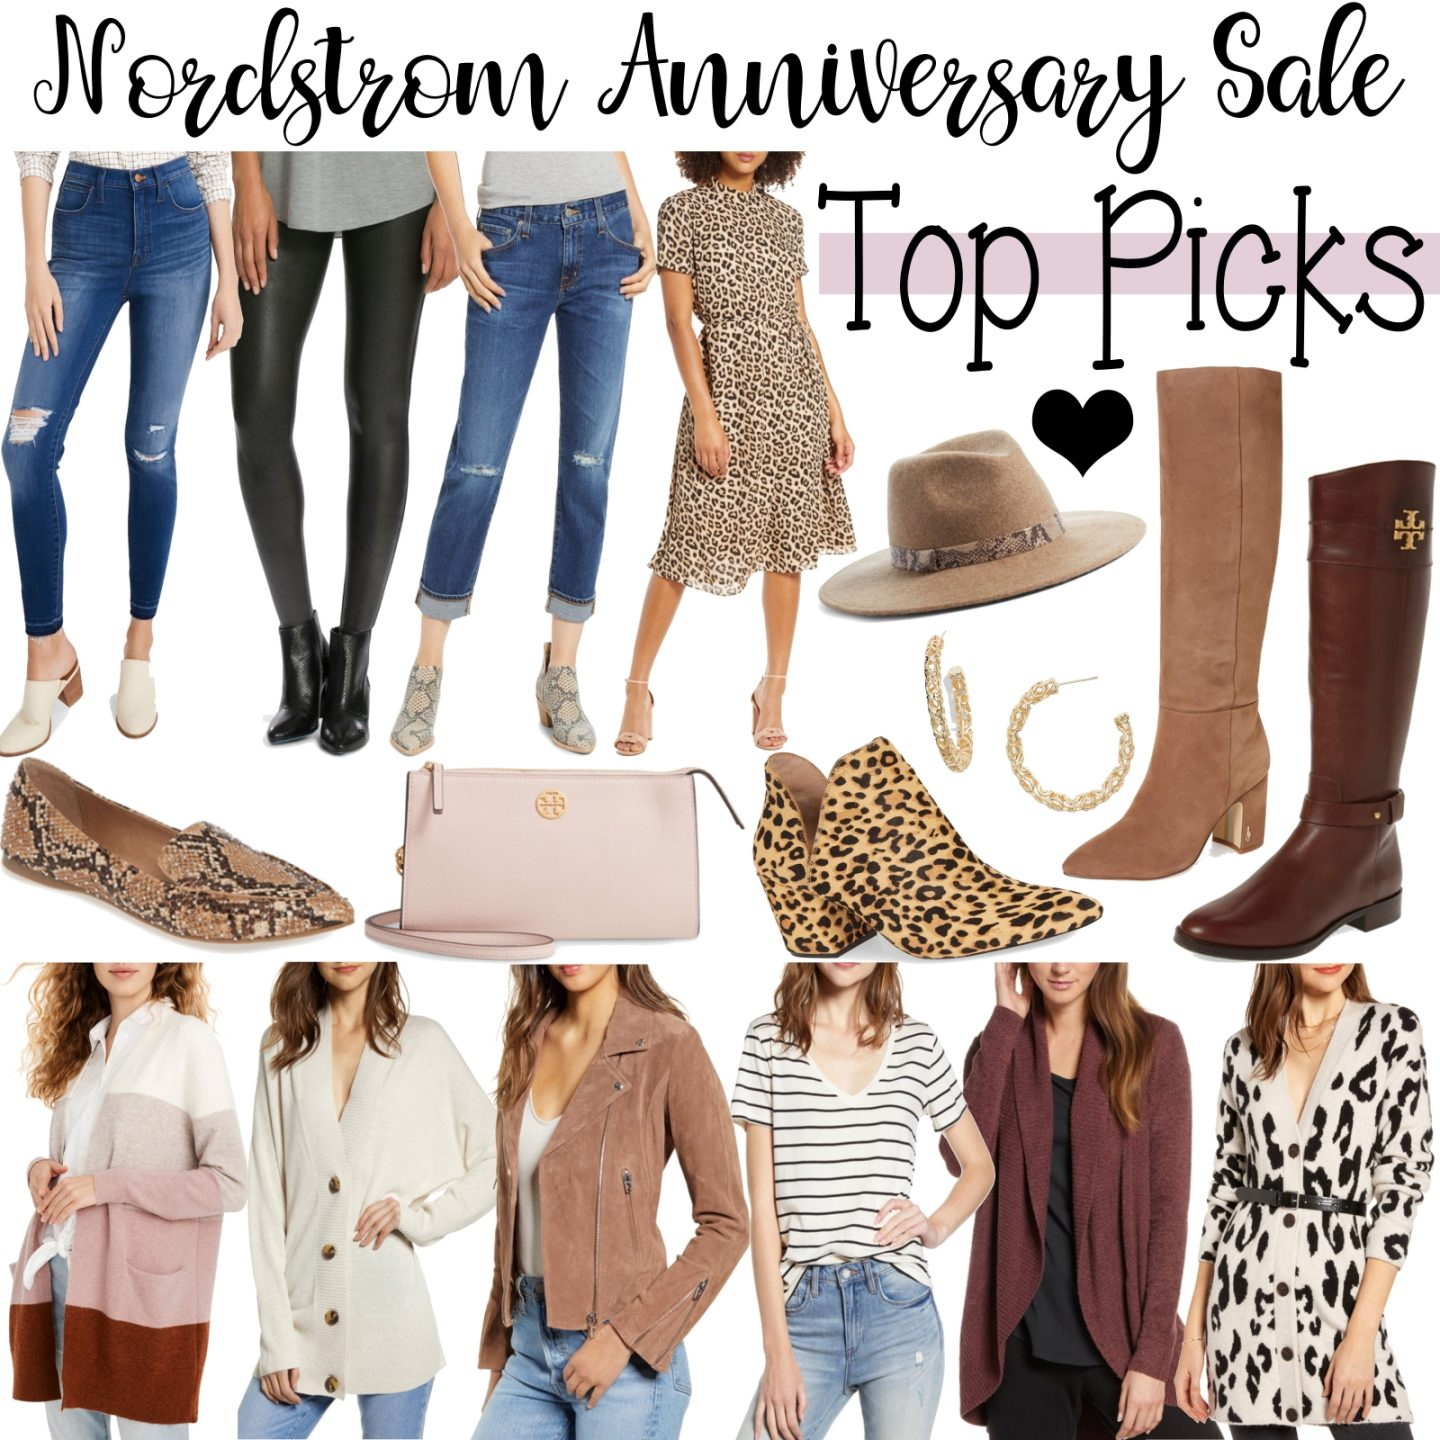 2019 Nordstrom Anniversary Sale Top Picks